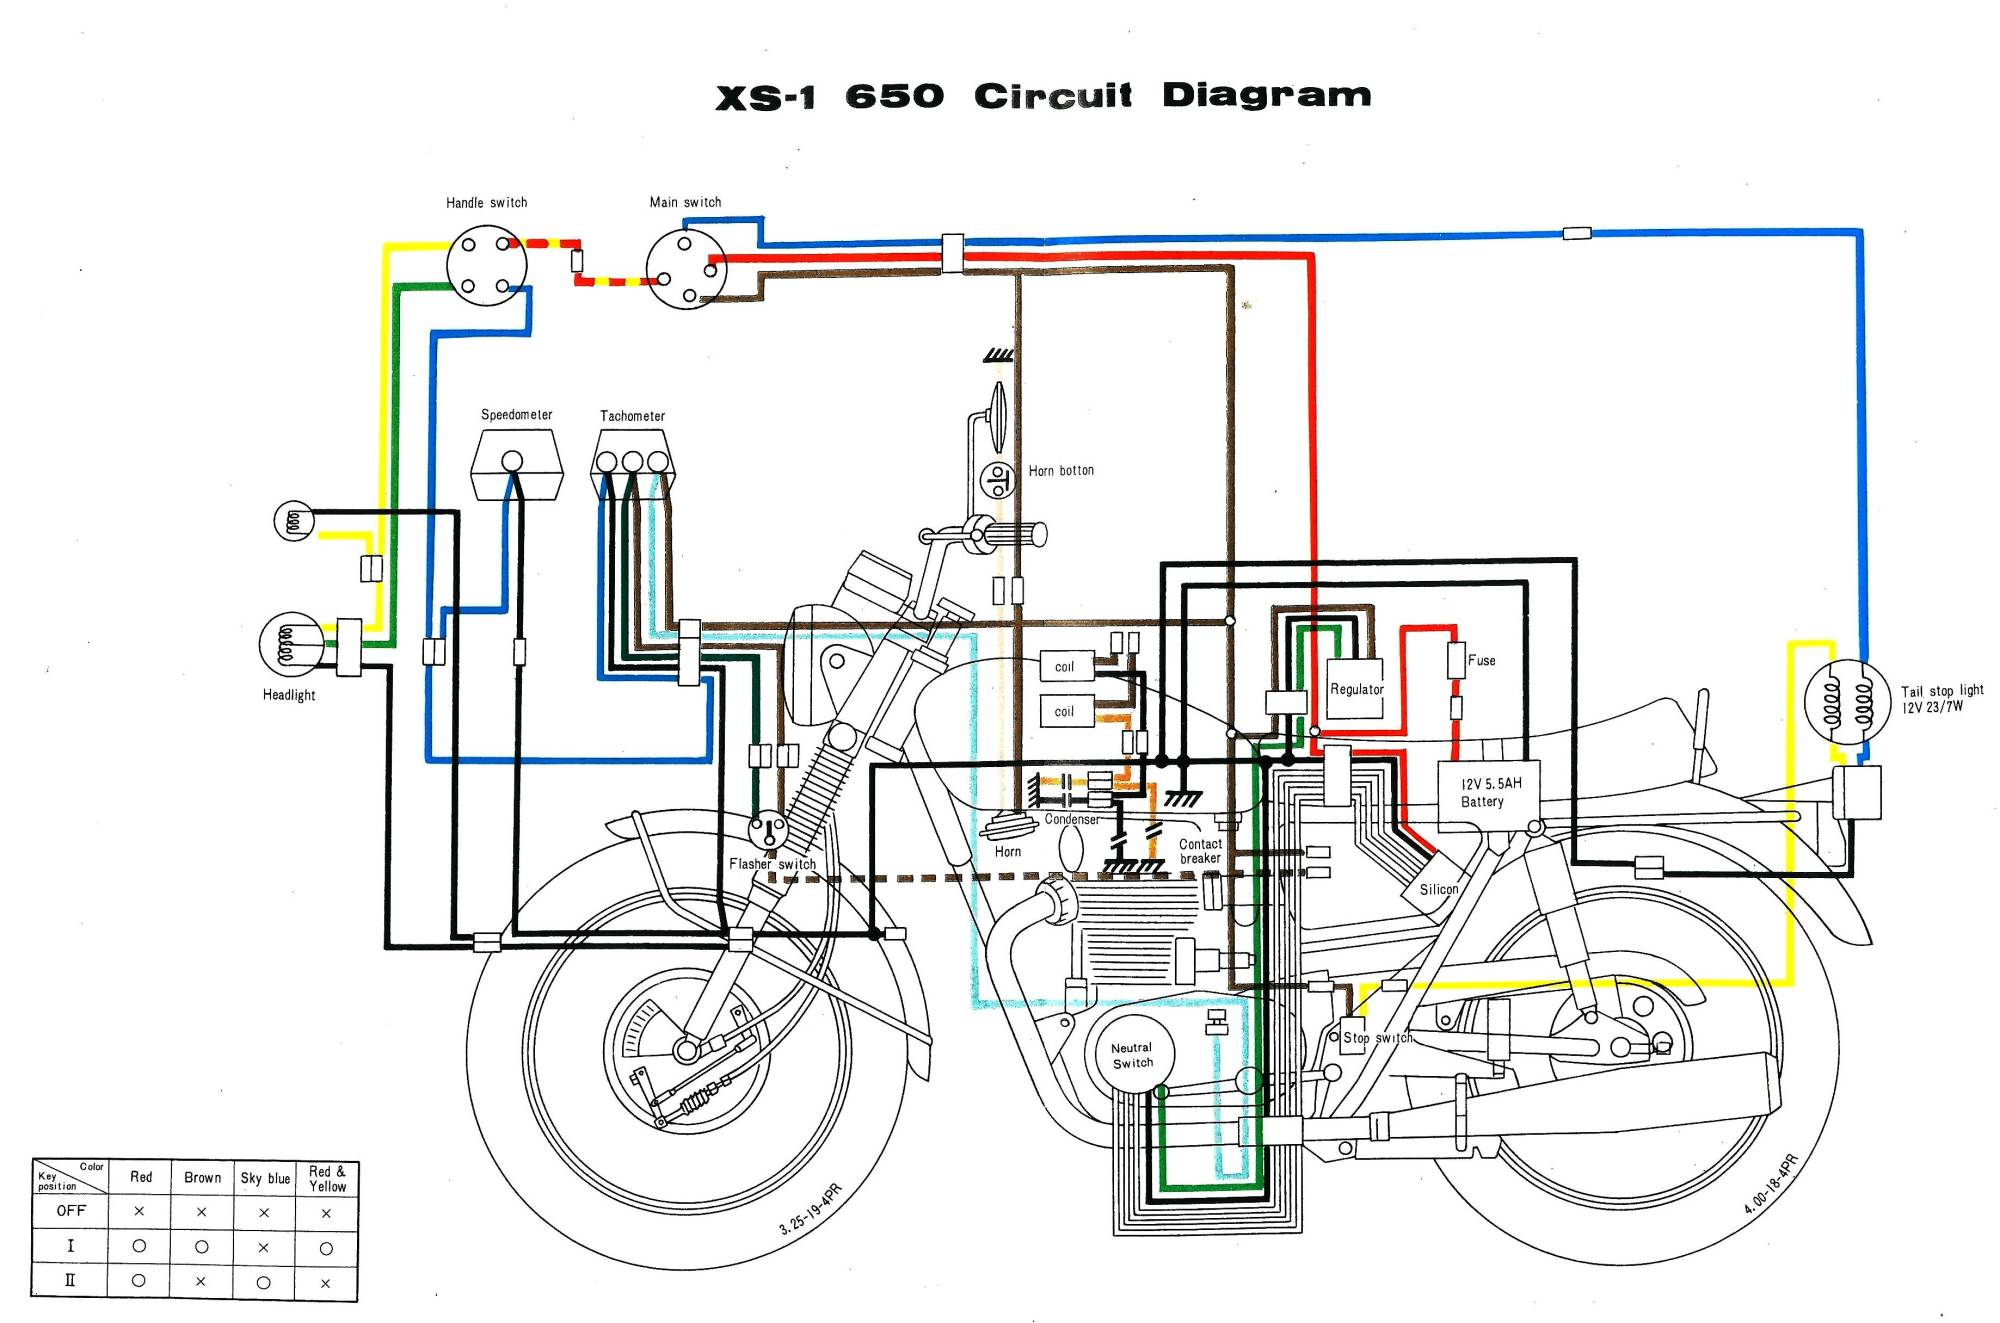 hight resolution of 3675x2432 wiring diagrams household electrical drawing with www